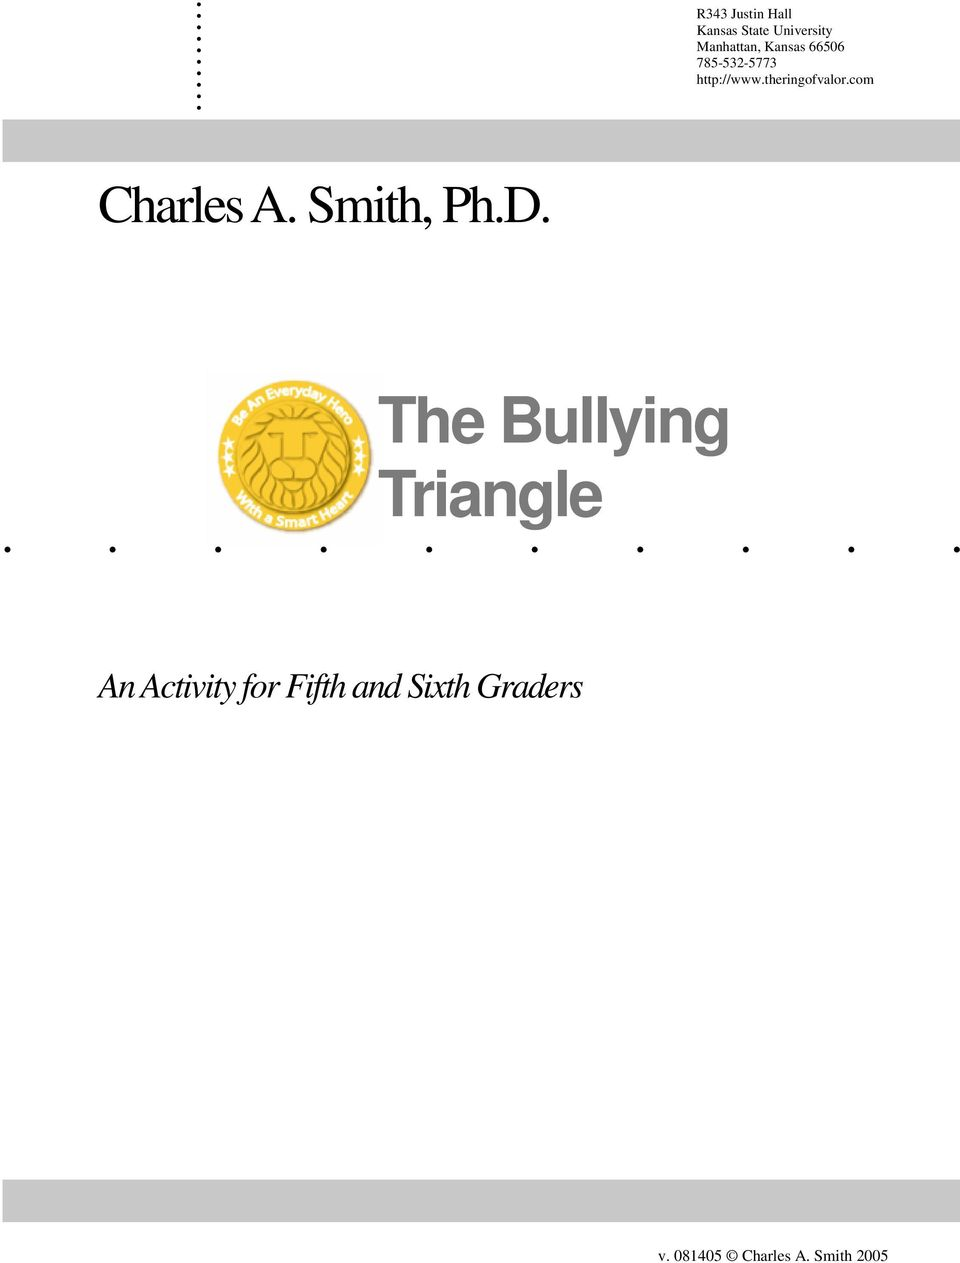 Smith, Ph.D. The Bullying Triangle.